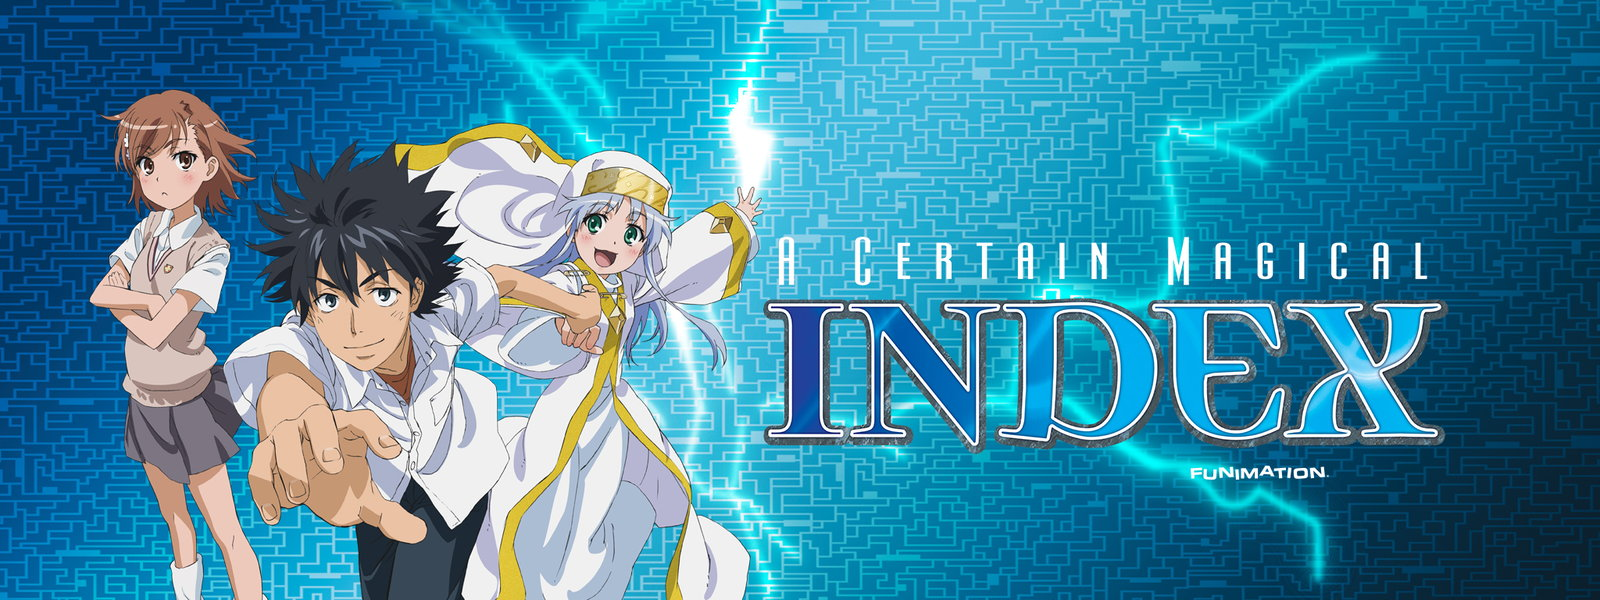 Anime 0 a certain magical index not completely bad as they say by